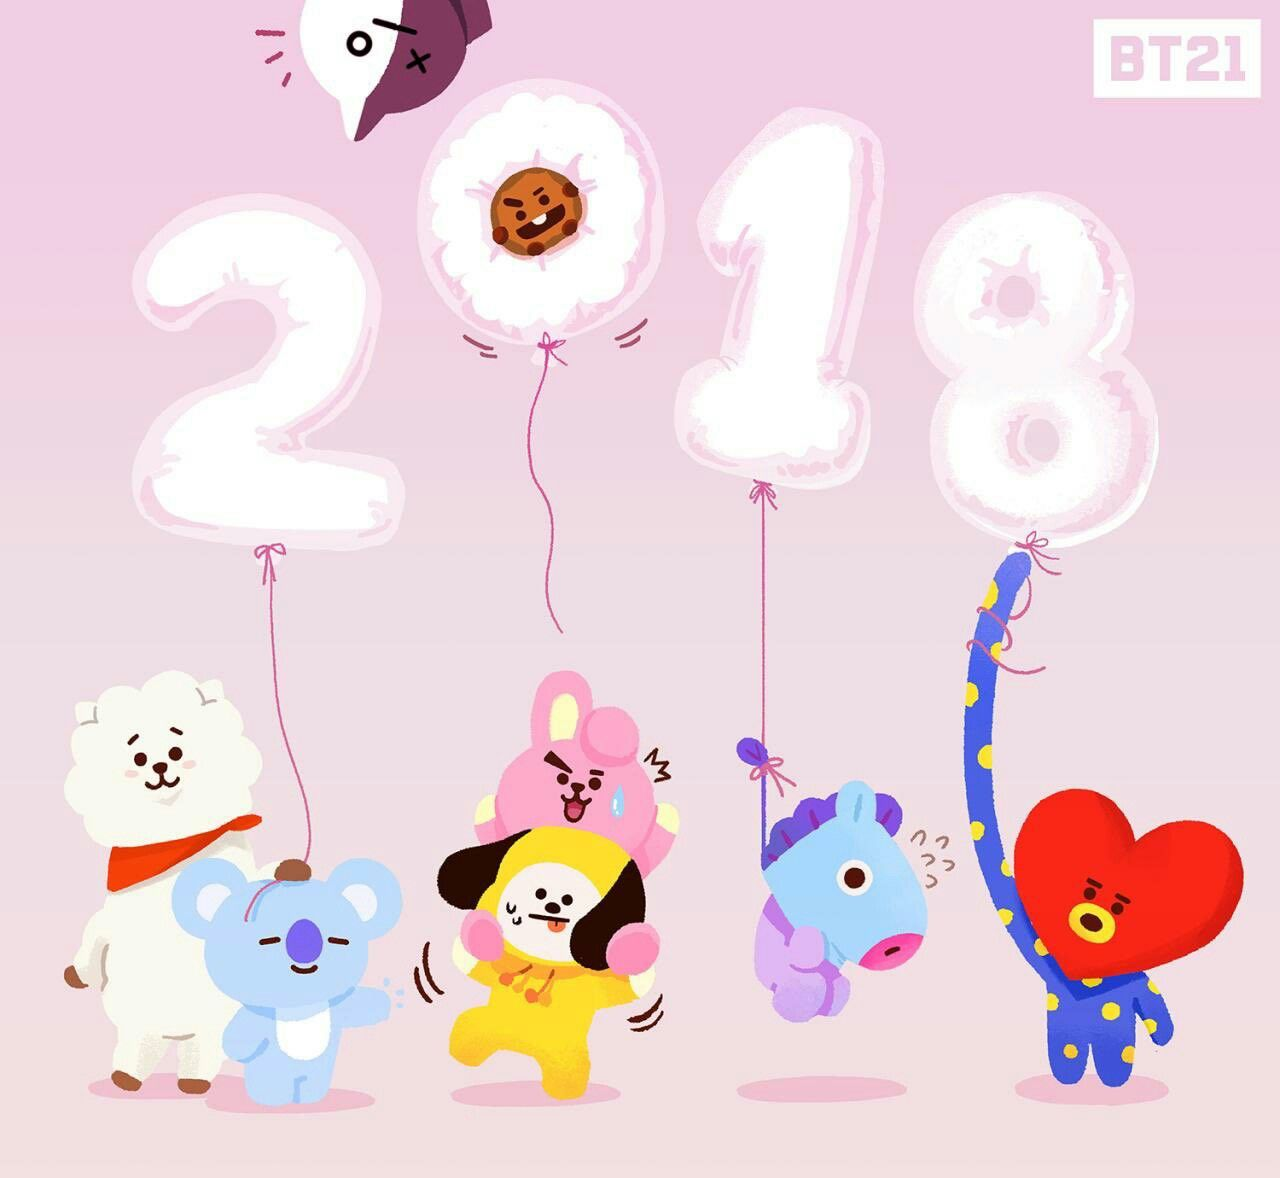 happy new year bt21 2018